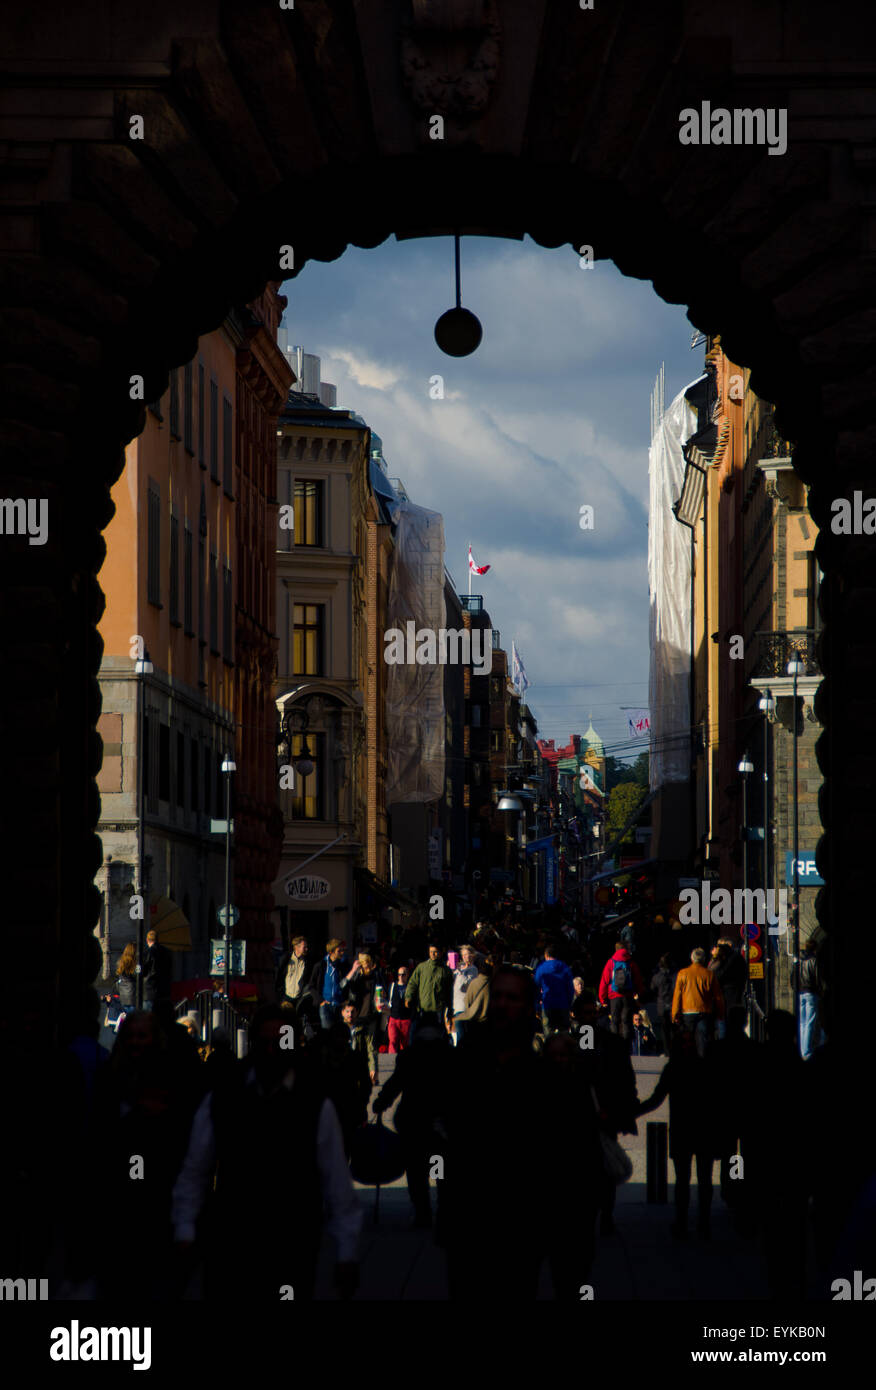 Young and modern vibe in Stockholm. - Stock Image